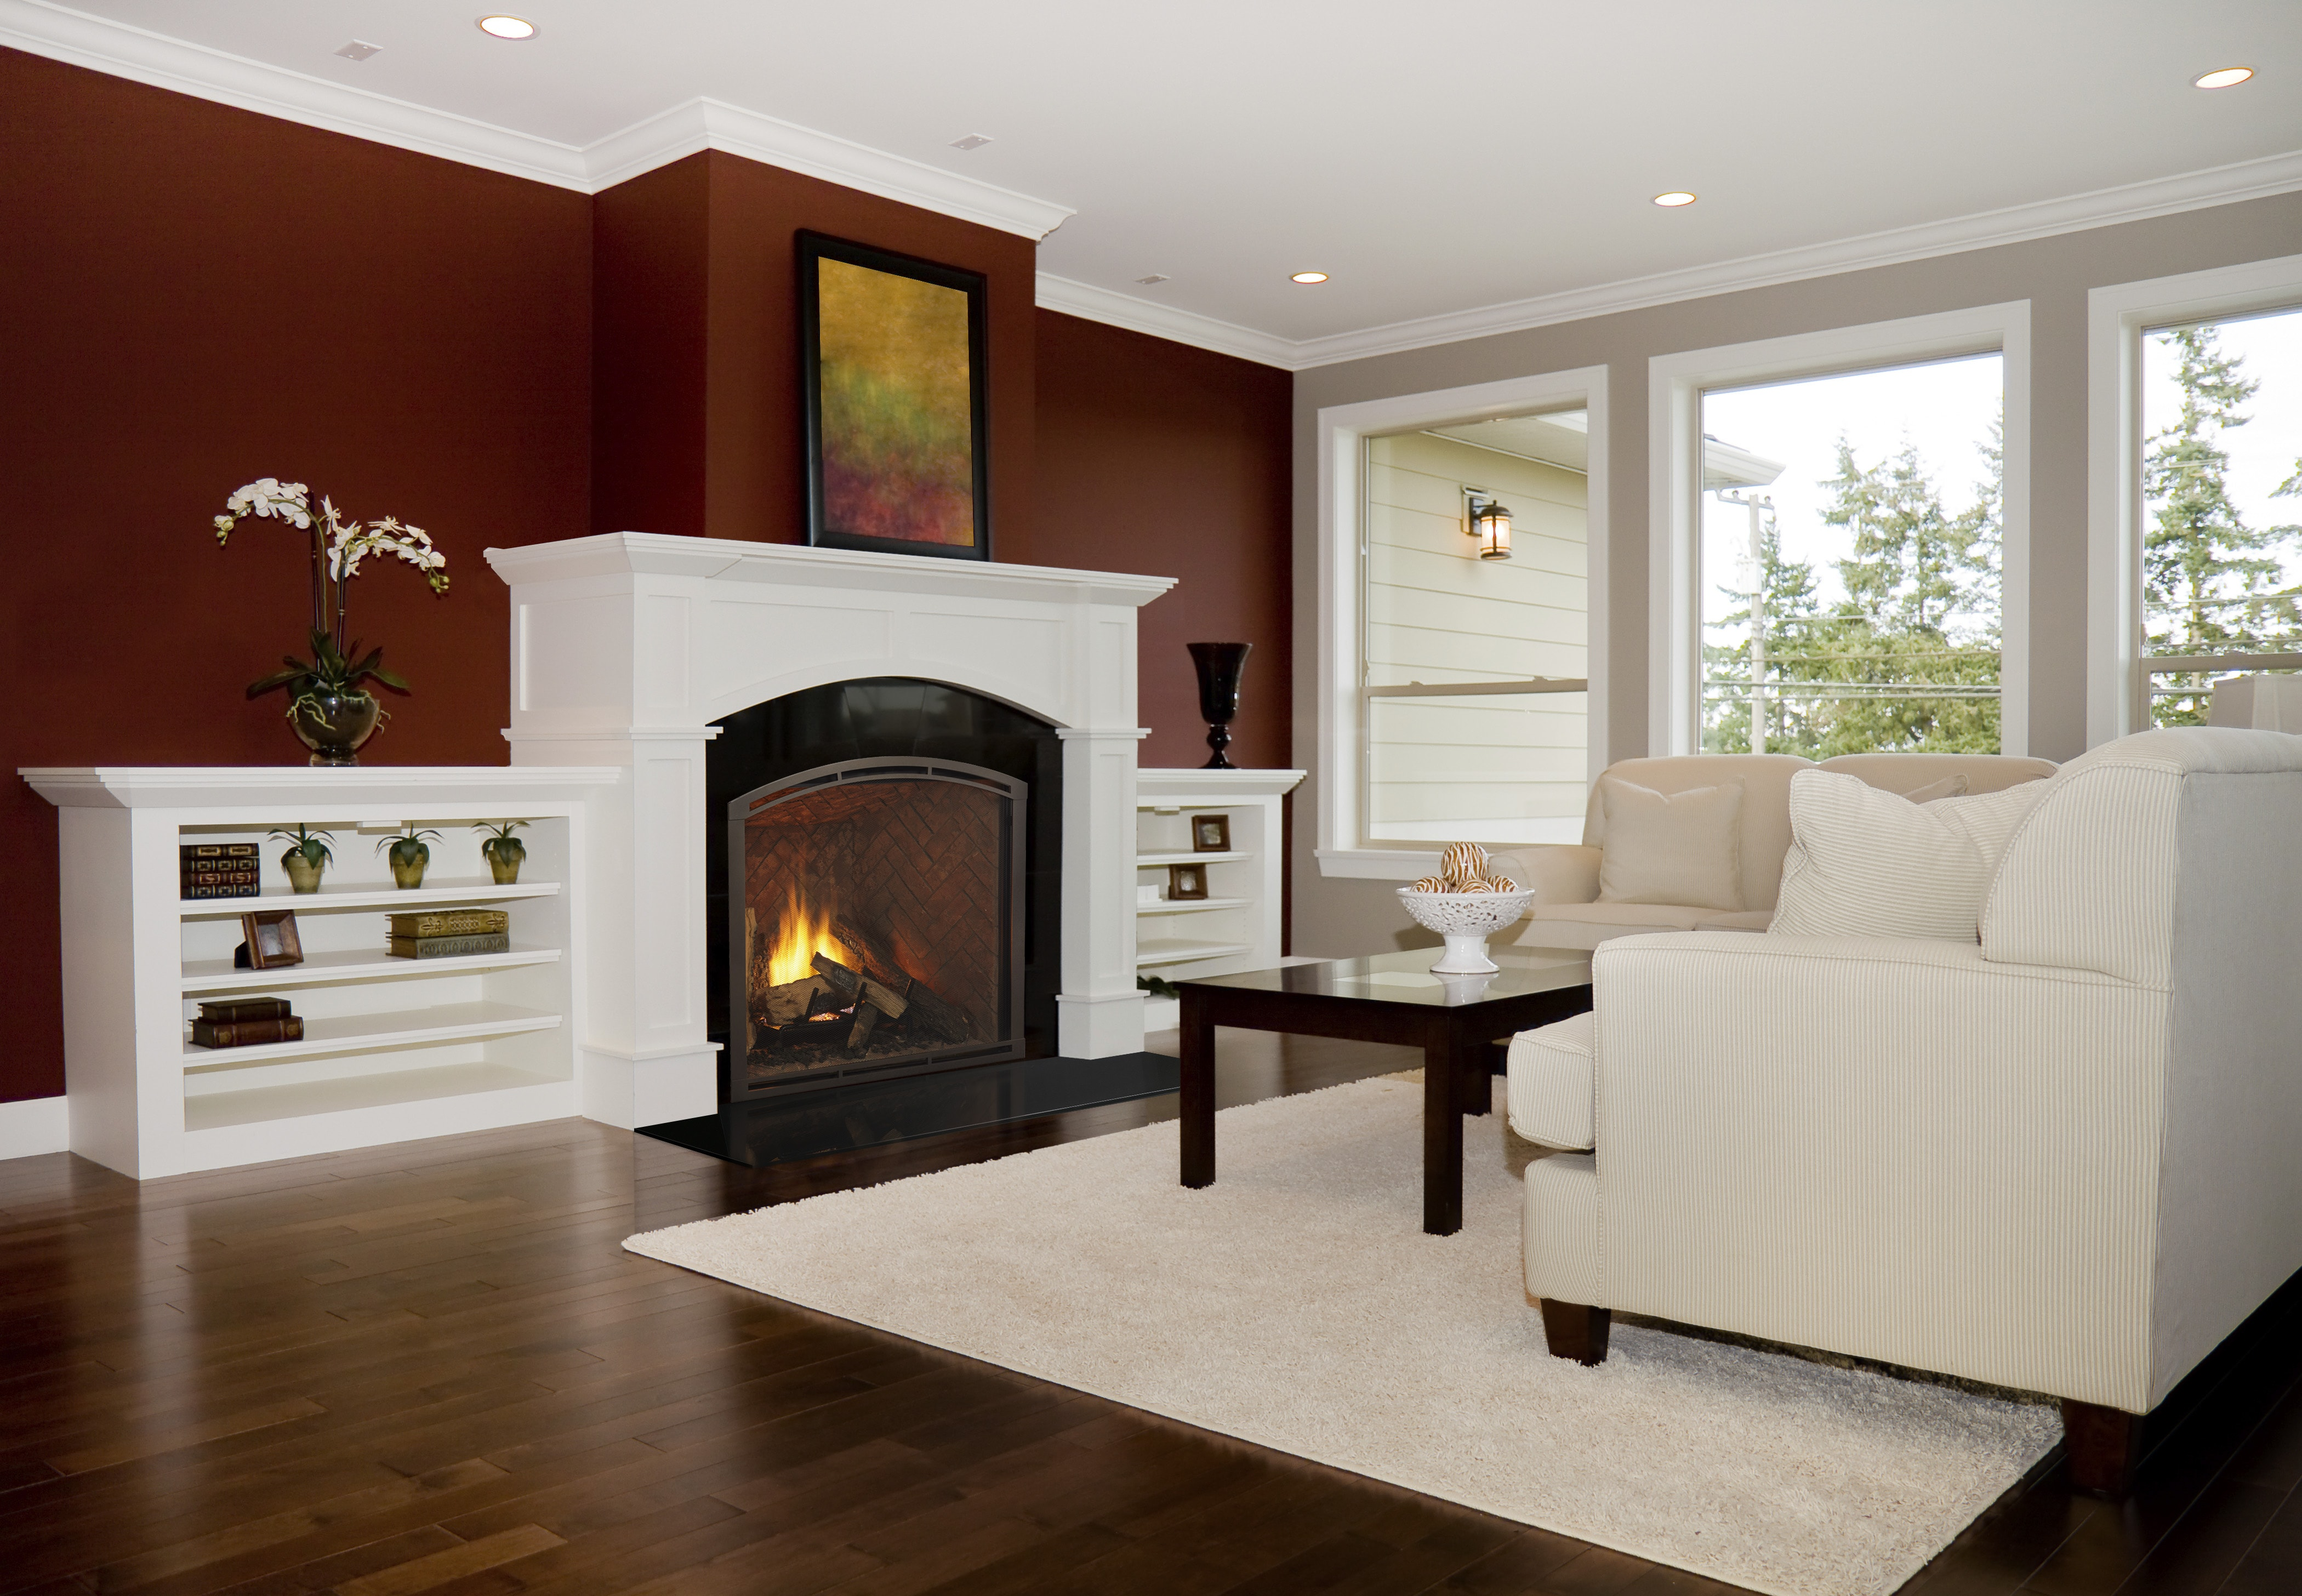 Heirloom gas fireplace